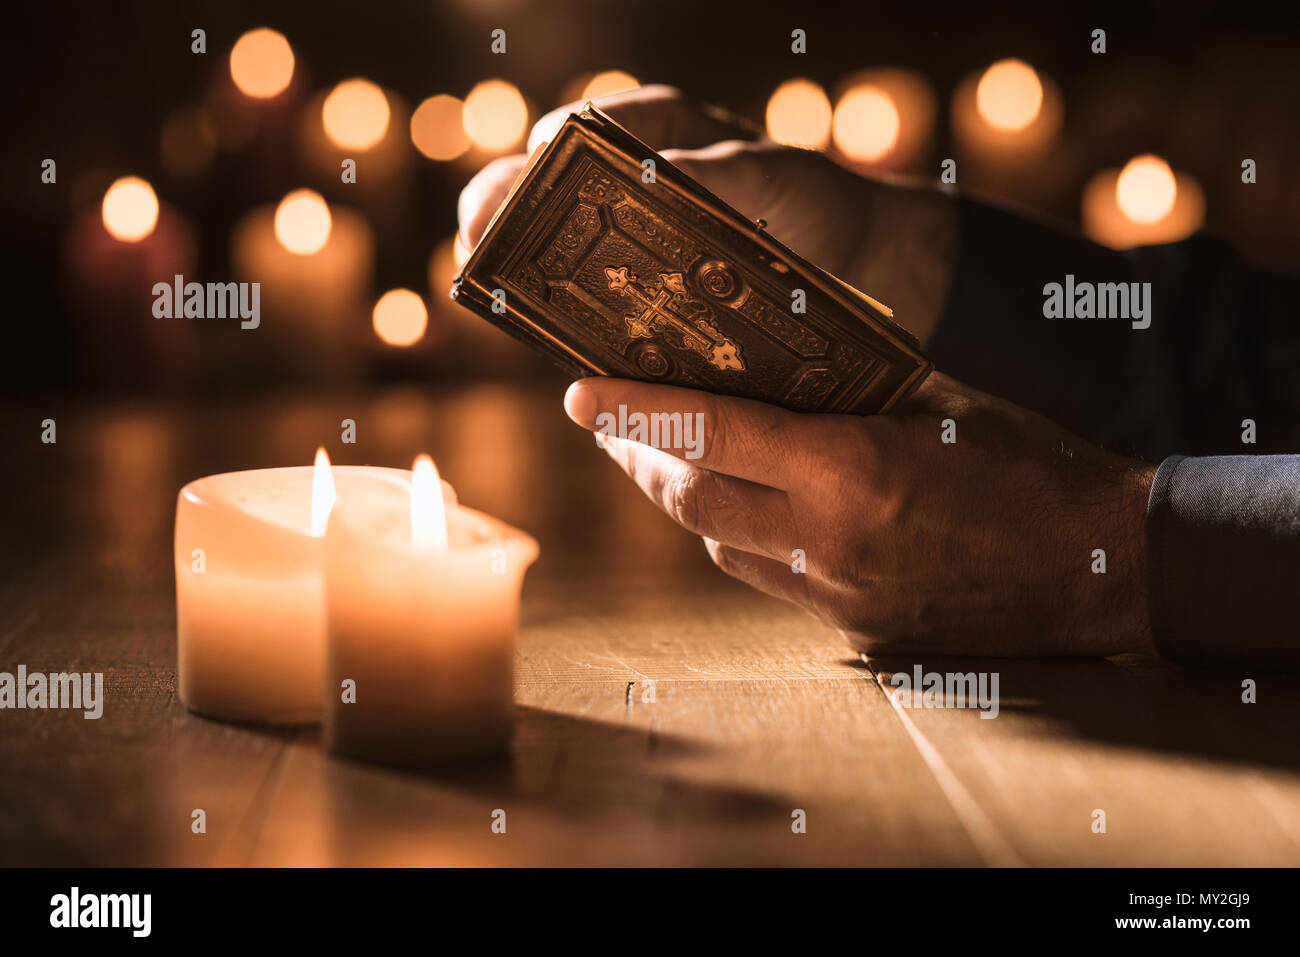 Religious man reading the Holy Bible and praying in the Church with lit candles, religion and faith concept - Stock Image